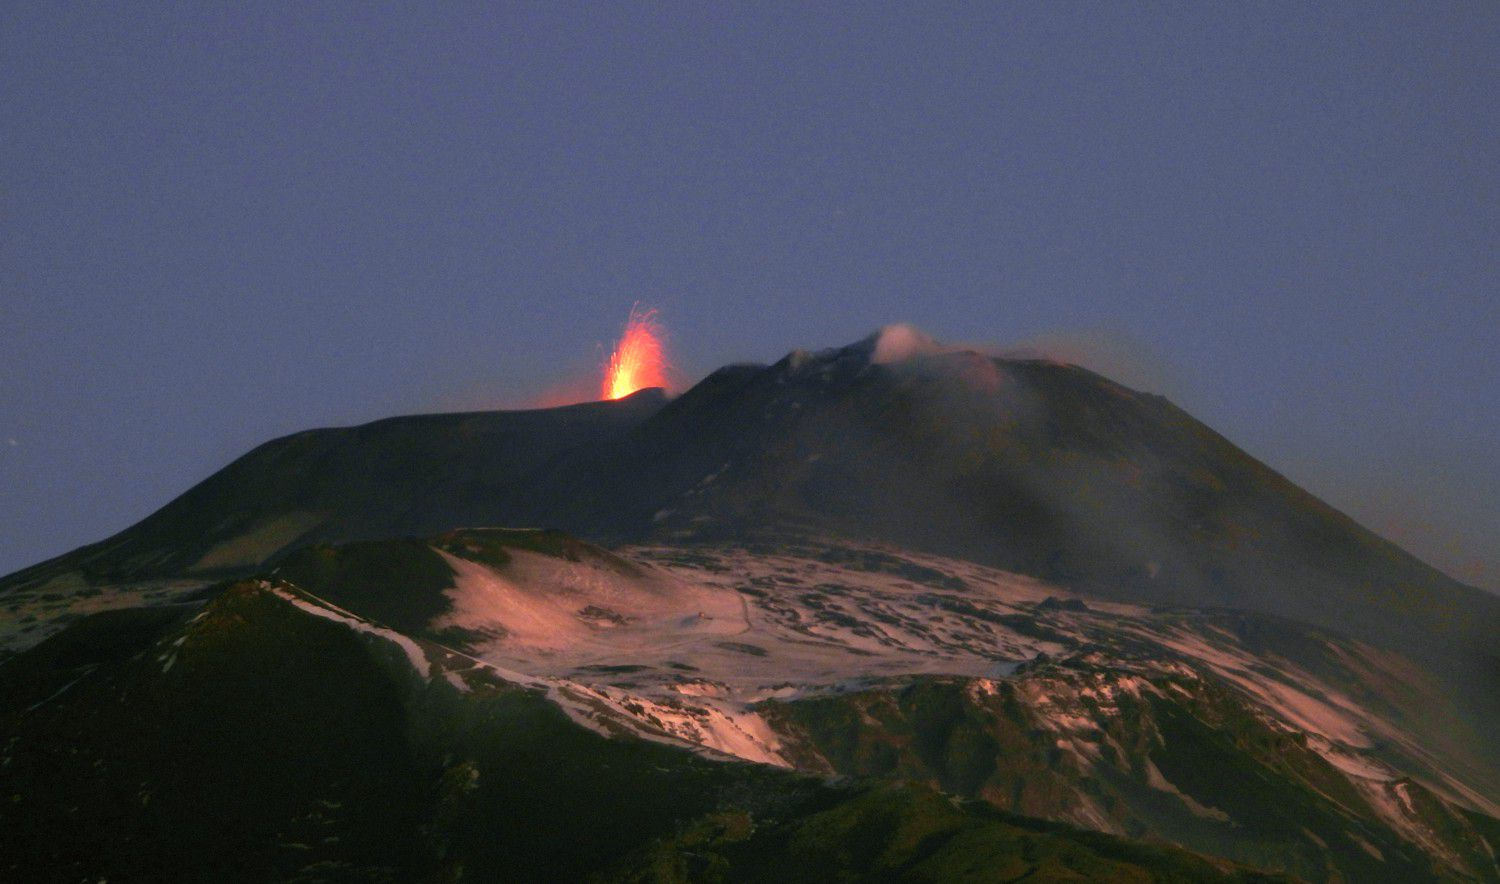 Etna - Strombolian explosions on its Voragine crater (one of the four summit craters of the volcano). Photo taken at dawn on January 30, 2020 (view from the south) by Boris Behncke